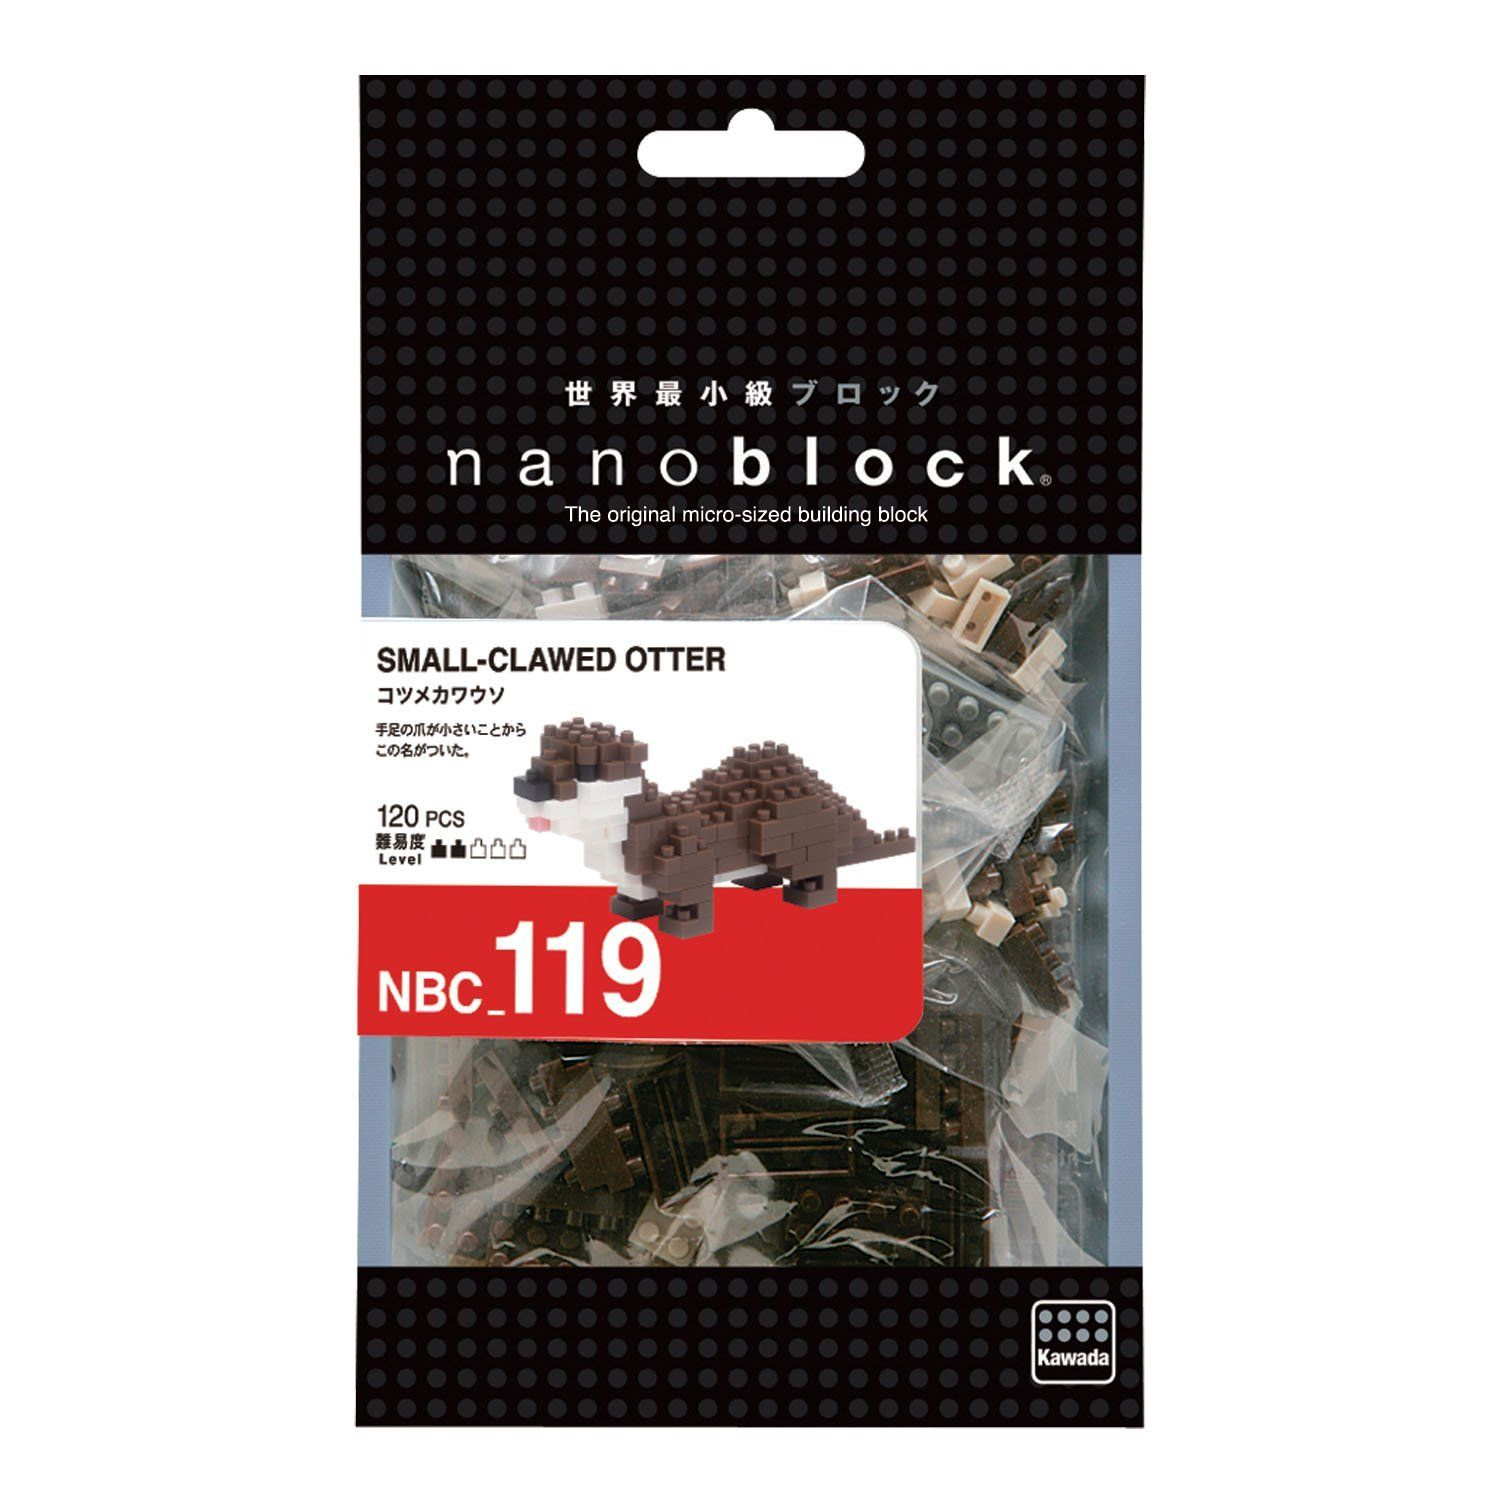 Small-Clawed Otter Mini Building Sets by Nanoblock (NBC119) by nanoblock